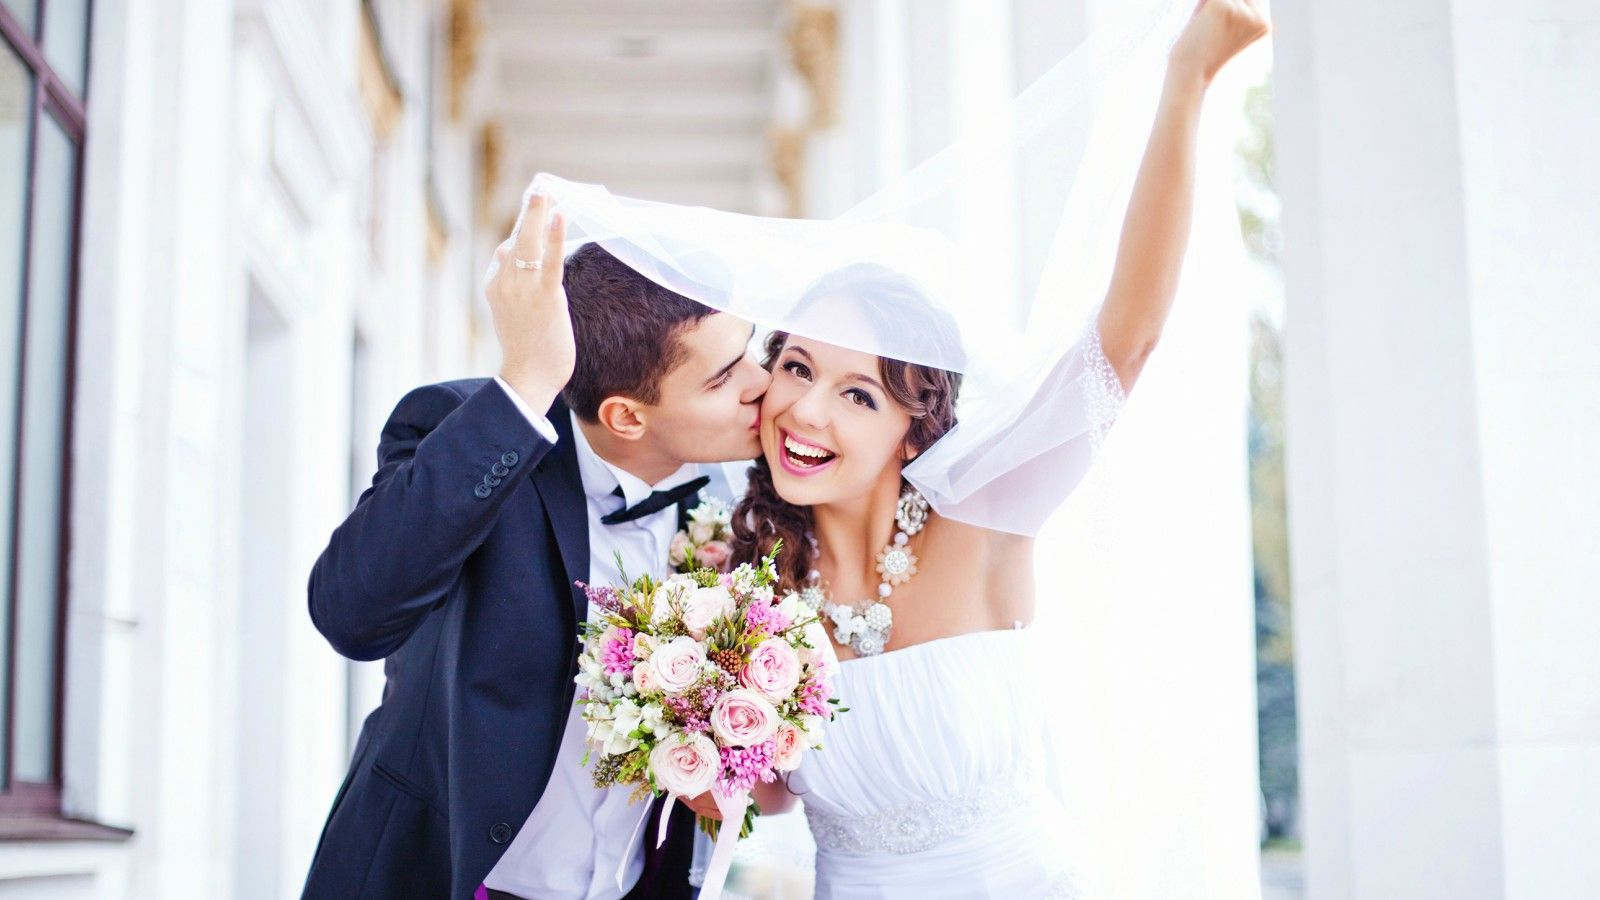 Boston Wedding Venues - Married Couple